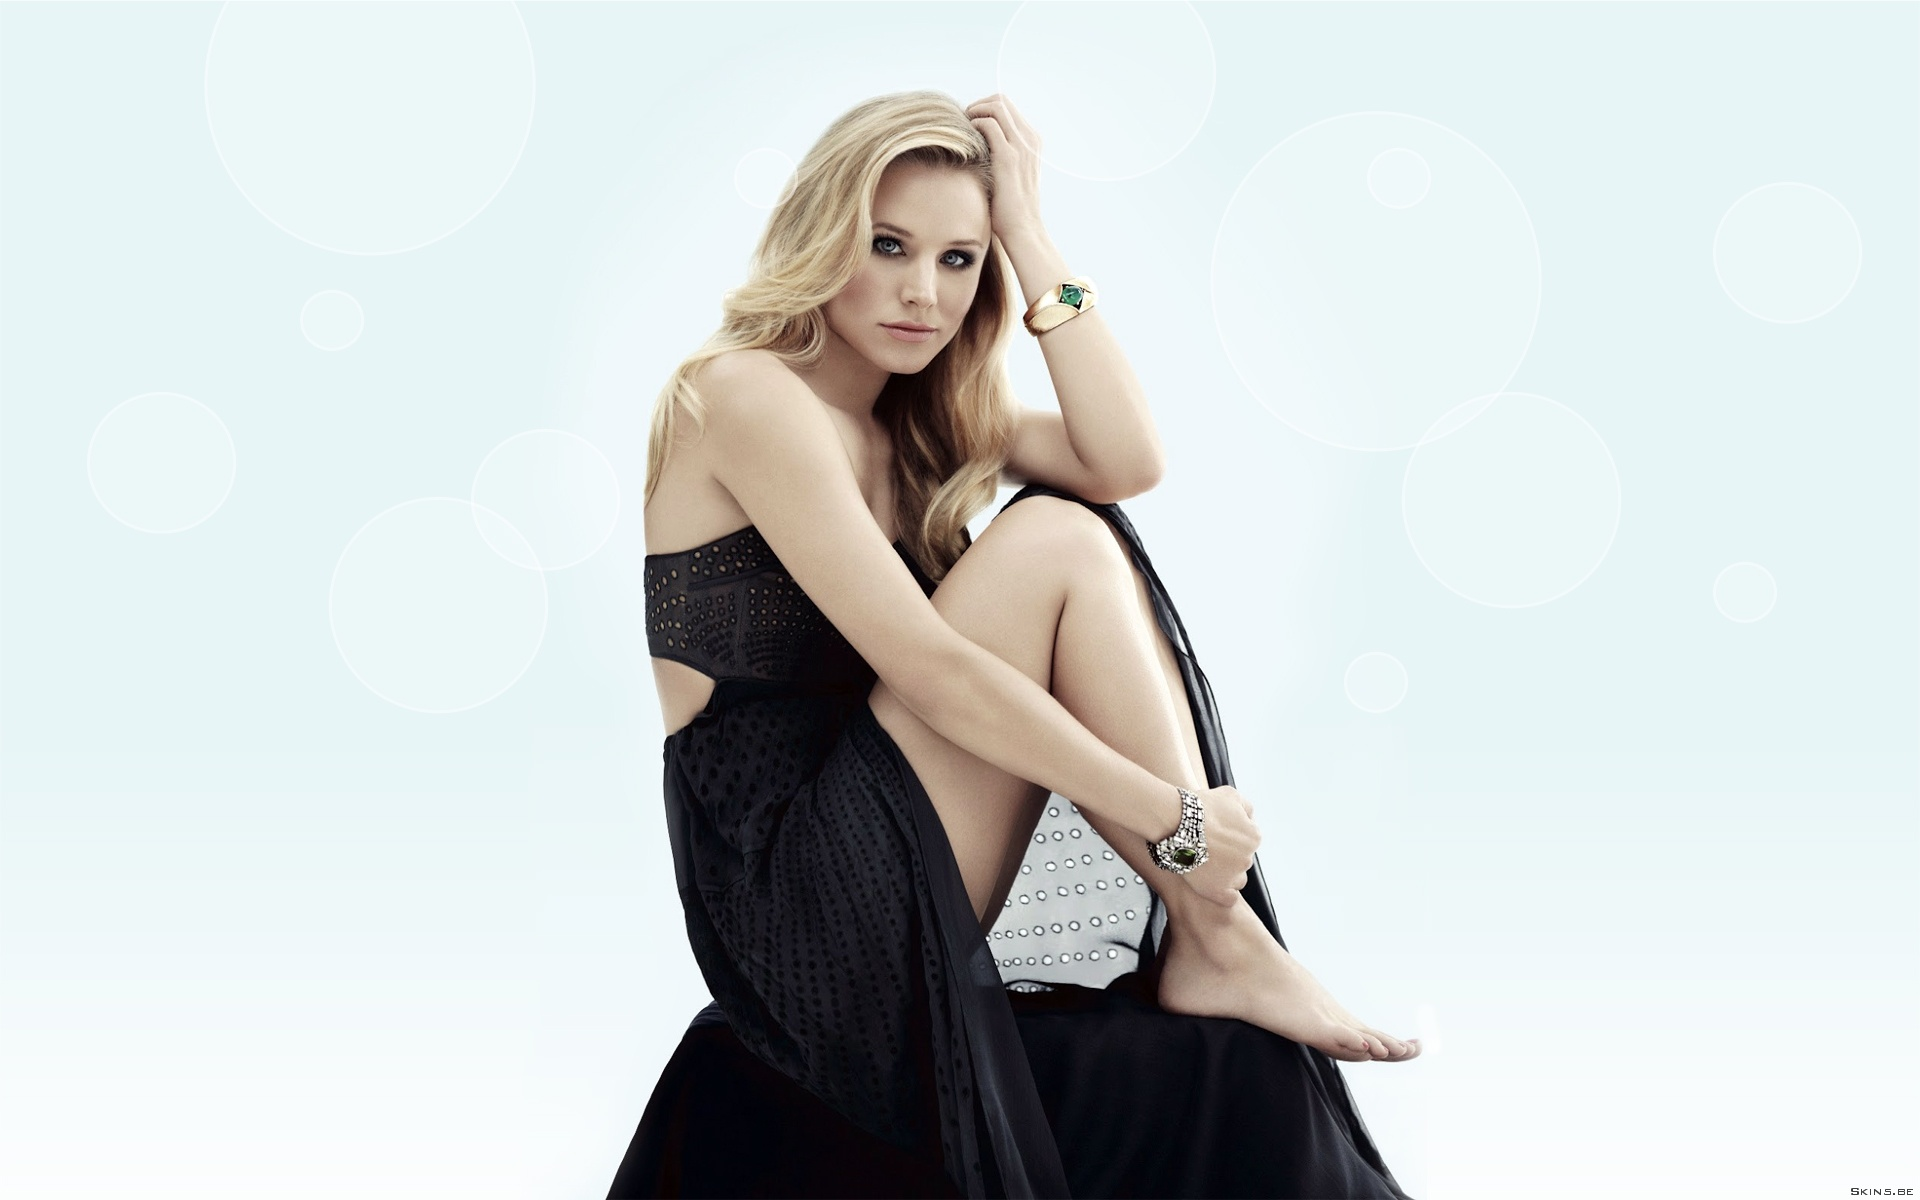 Kristen Bell Wallpapers High Quality   Download Free